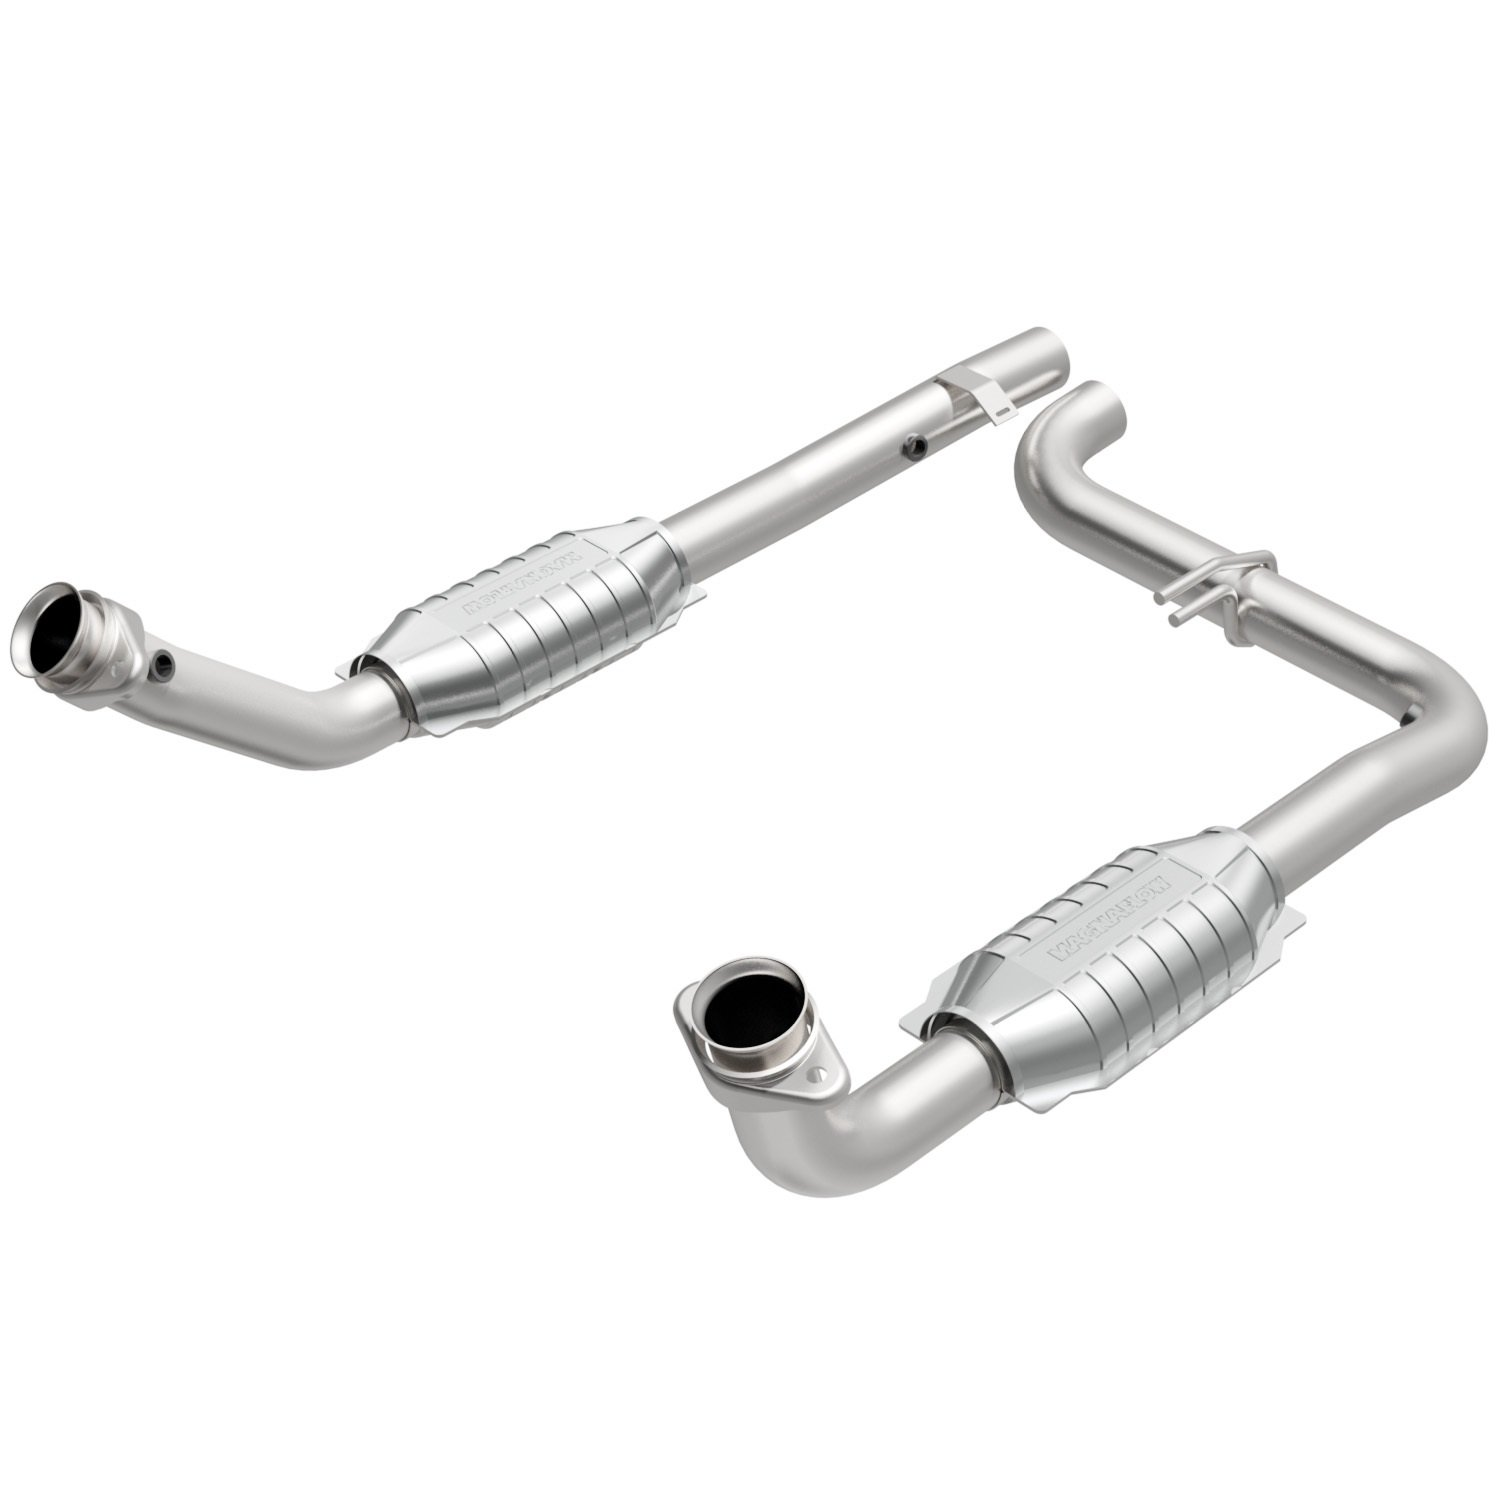 Non CARB compliant MagnaFlow 93418 Direct Fit Catalytic Converter